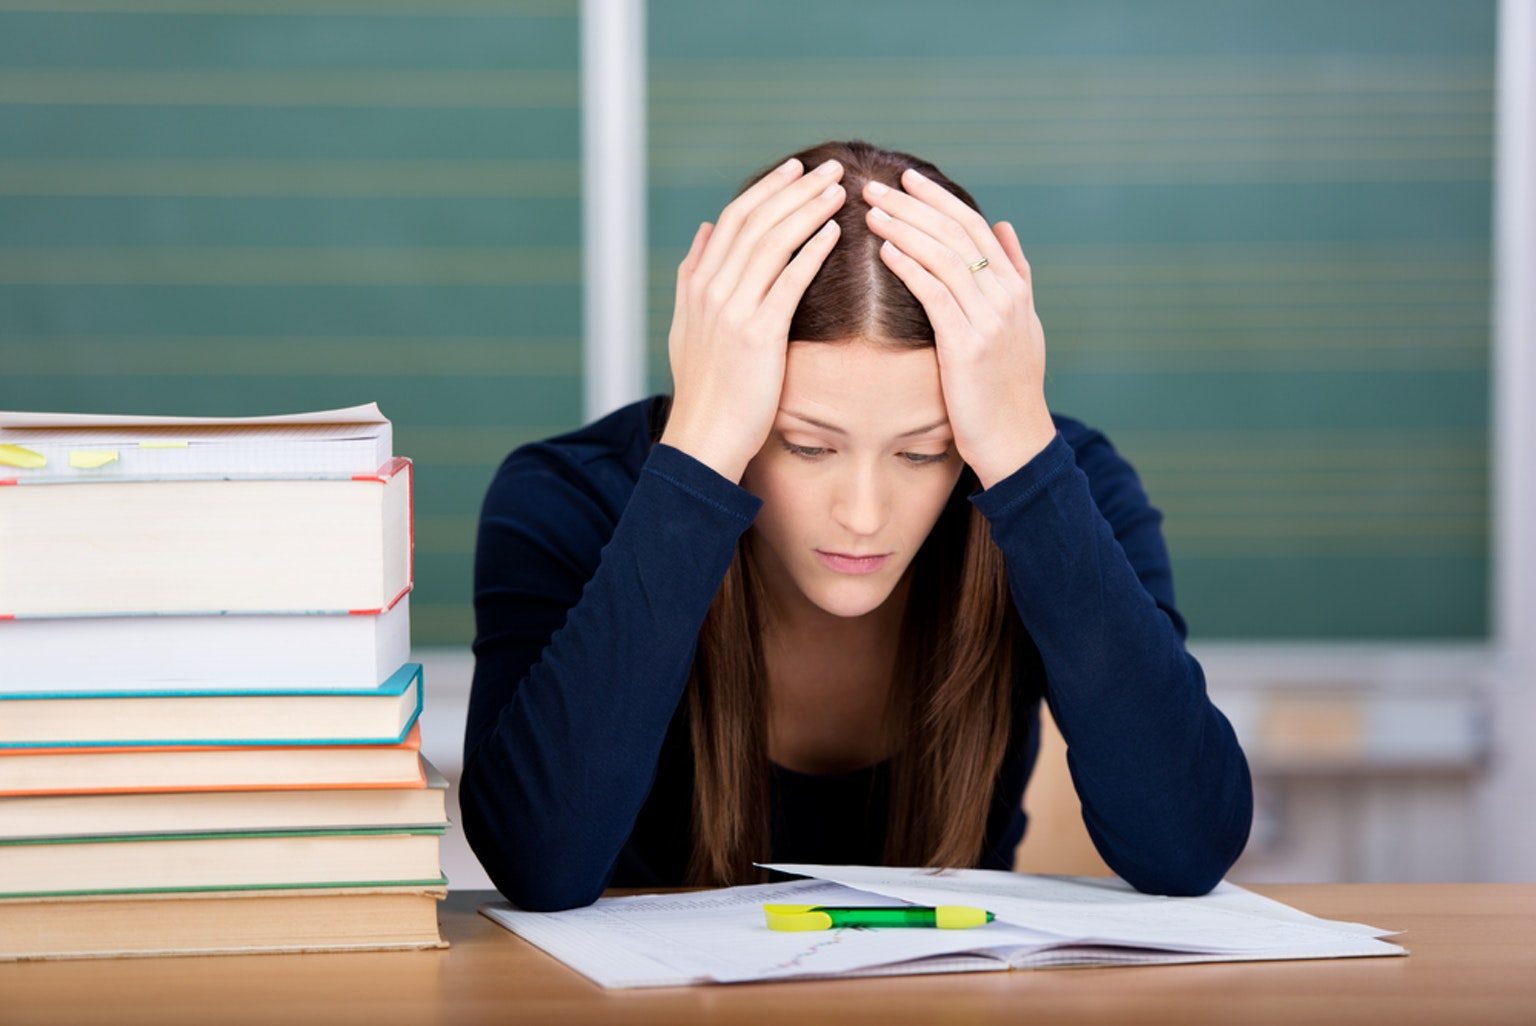 Student with hands on head while looking at papers